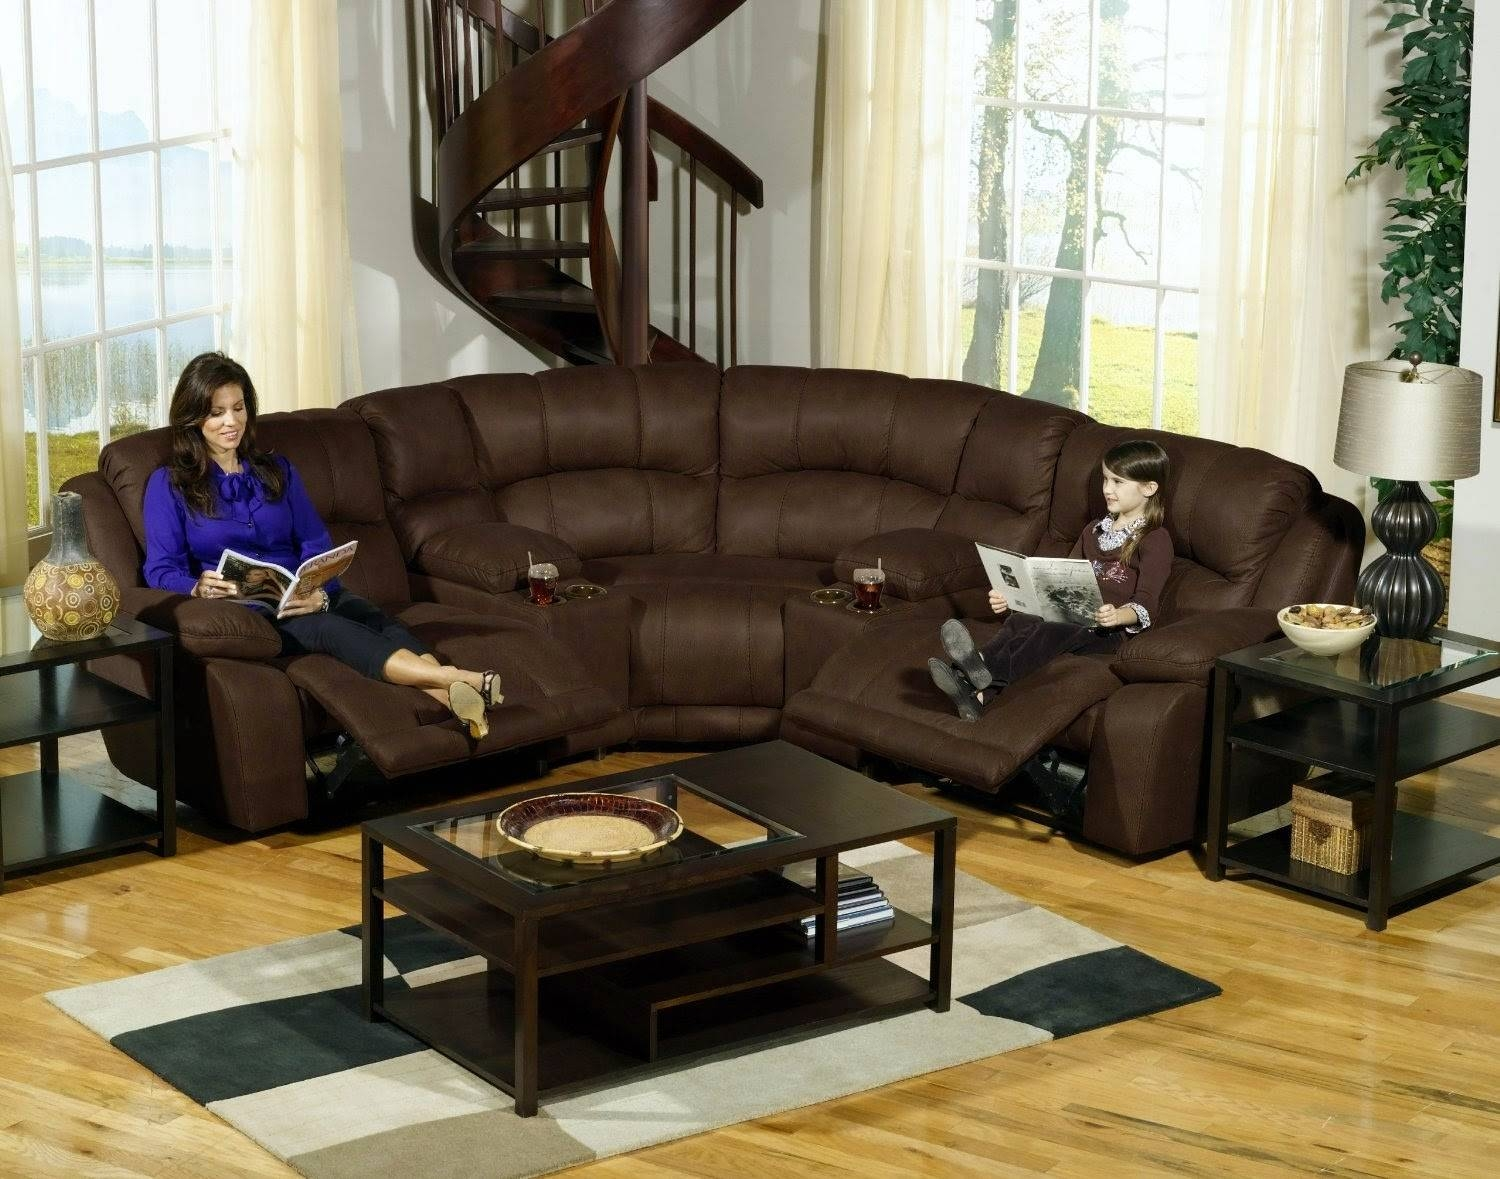 The Most Popular Slipcover For Sectional Sofa With Chaise 67 For regarding Slipcovers for Sectional Sofas : most popular recliners - islam-shia.org